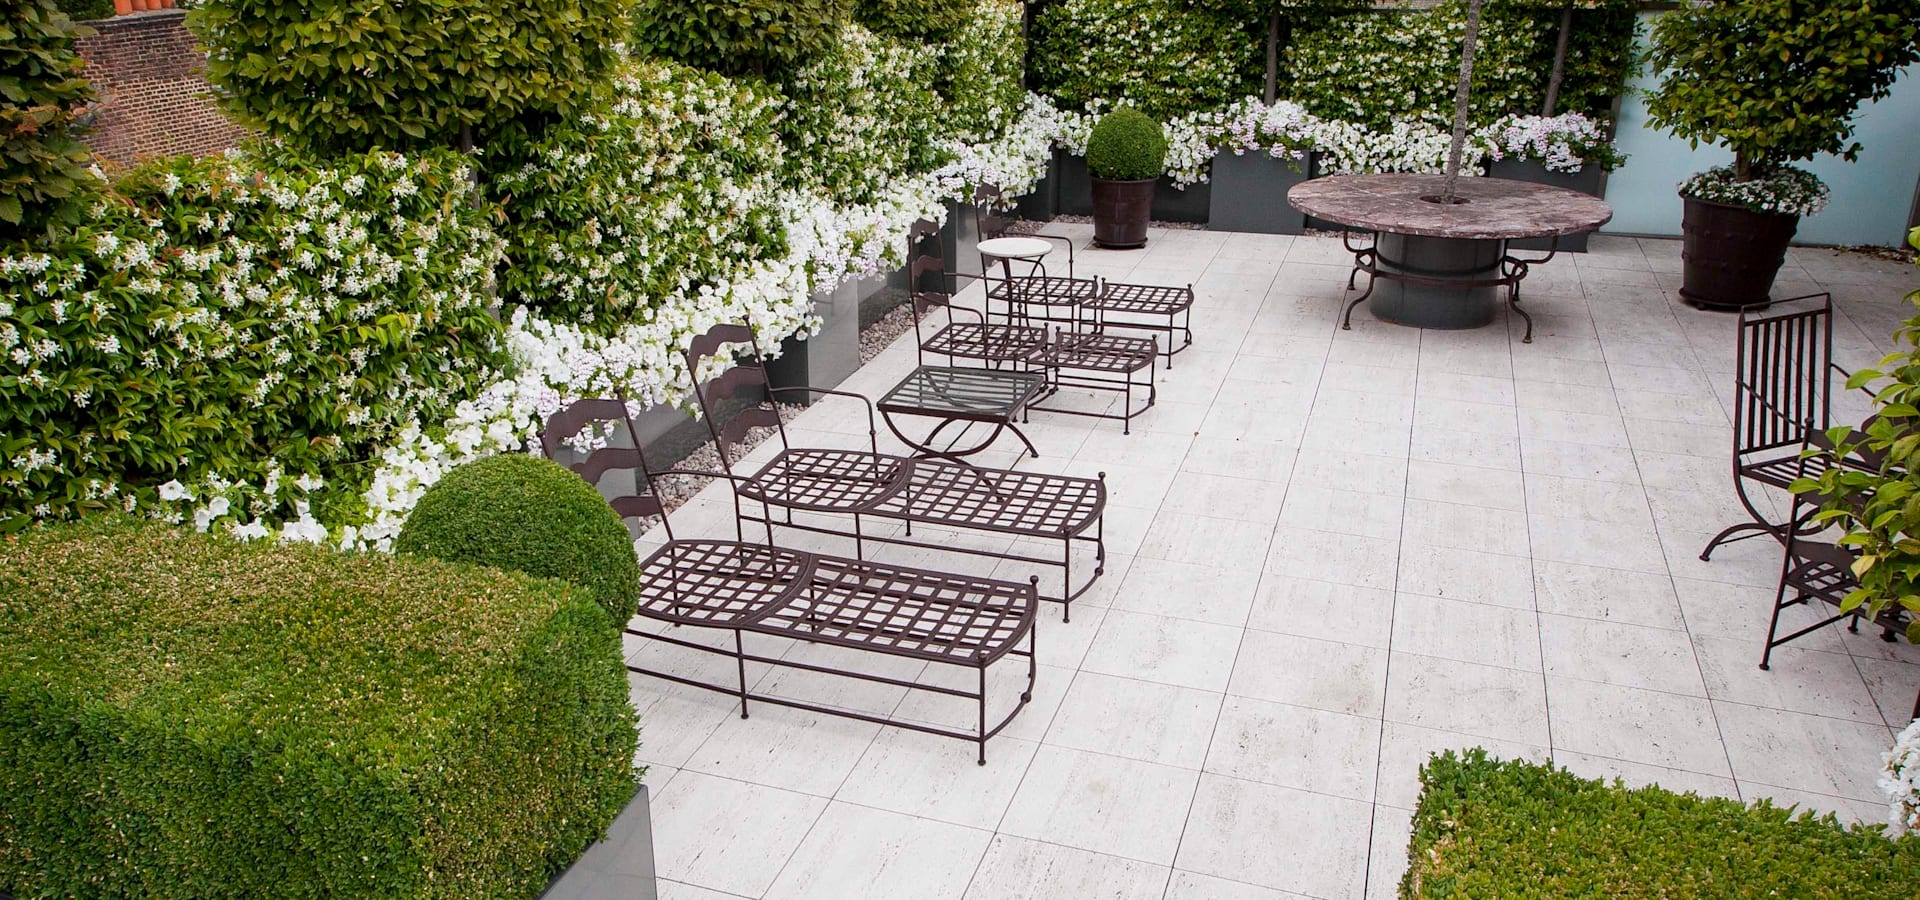 Classic Gardens And Landscape Cameron landscapes and gardens landscape designers in london homify cameron landscapes and gardens workwithnaturefo